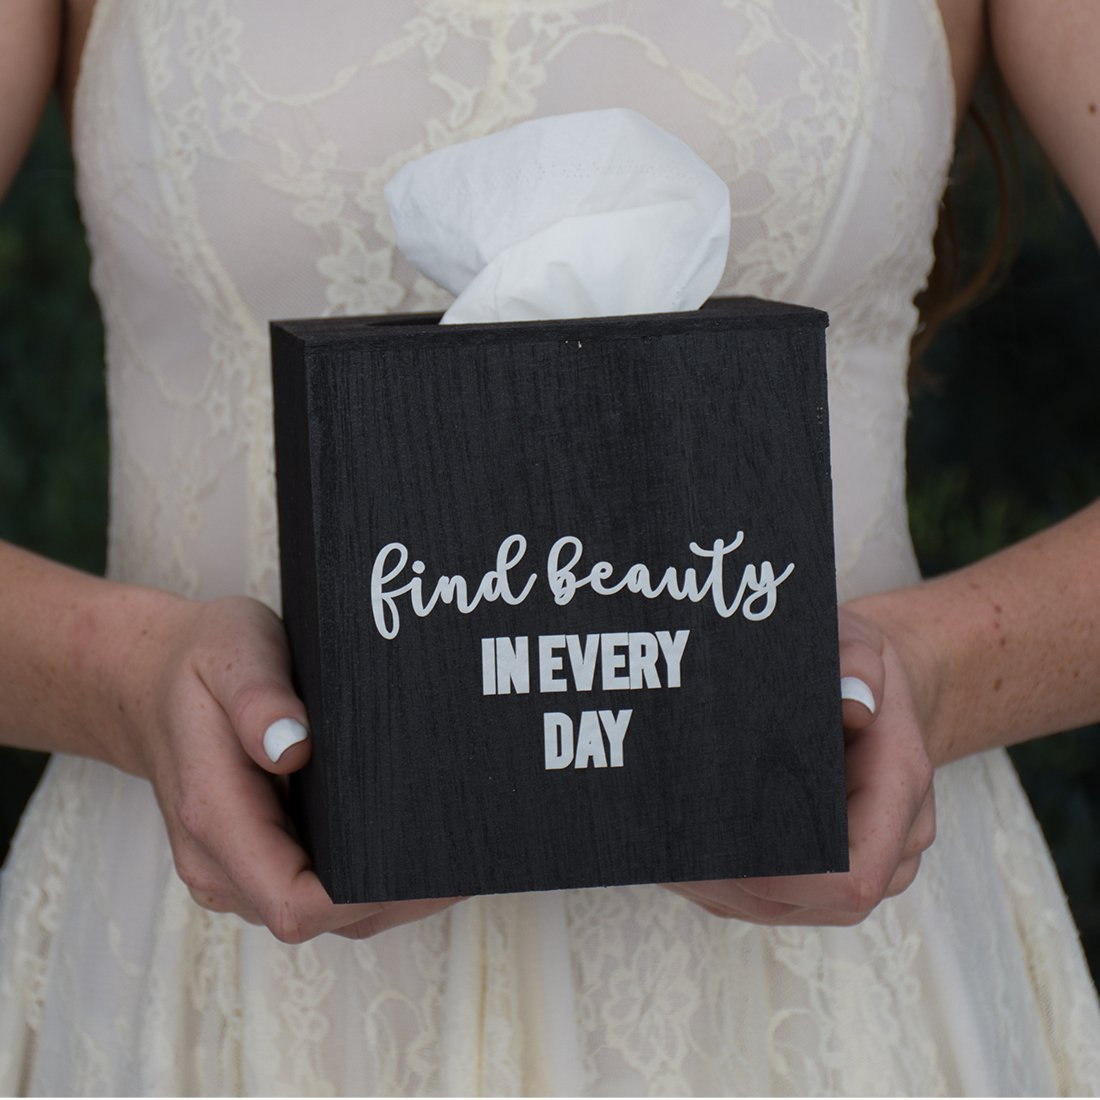 Find Beauty in Every Day - Wood Tissue Box Cover